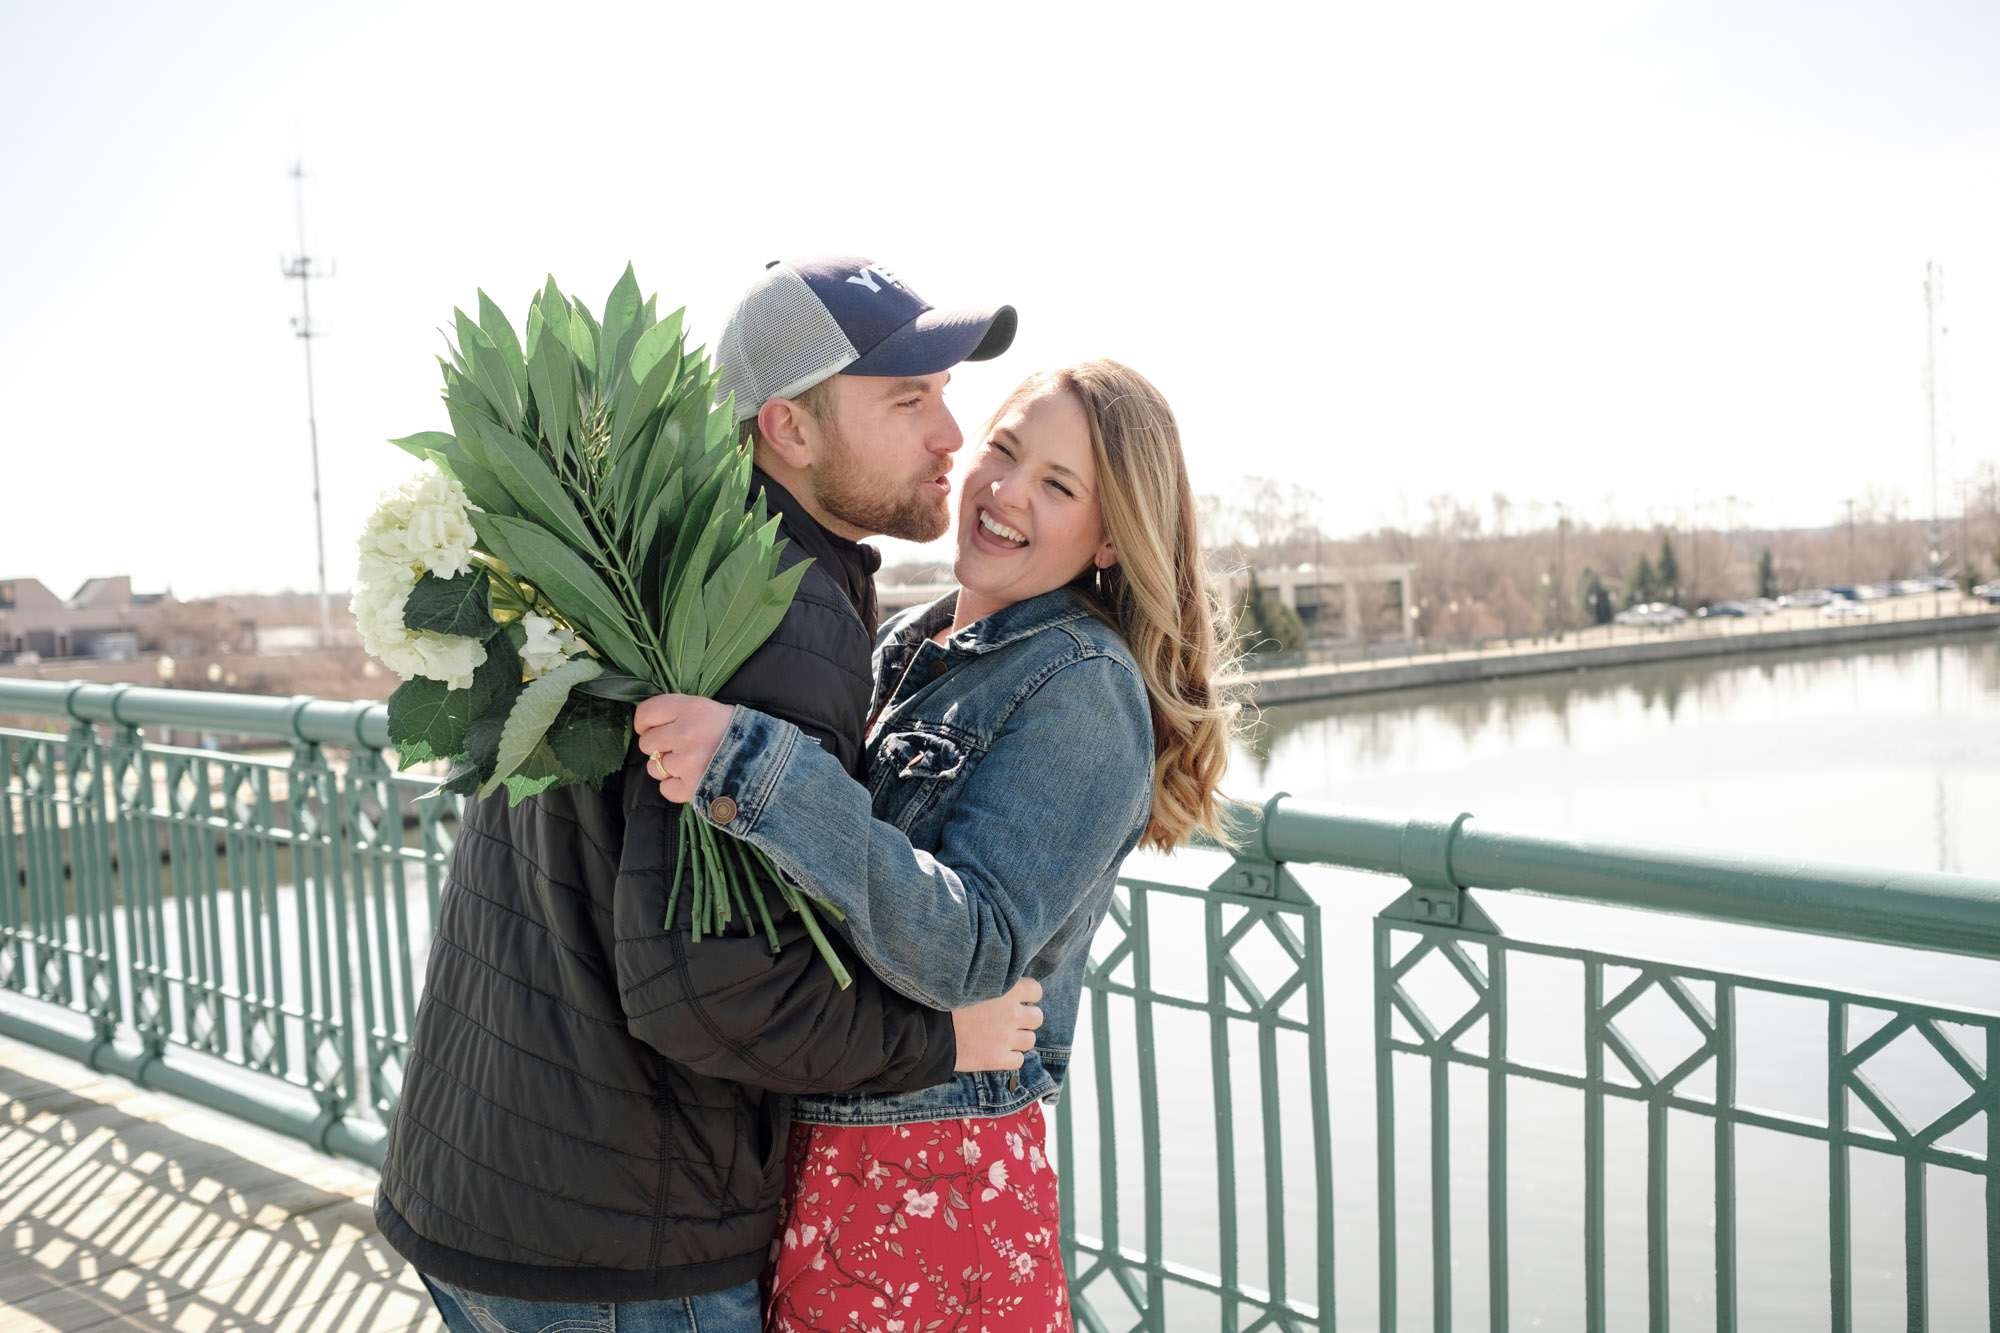 Couple laughing and kissing while holding flowers with water in background during engagement session in Joliet